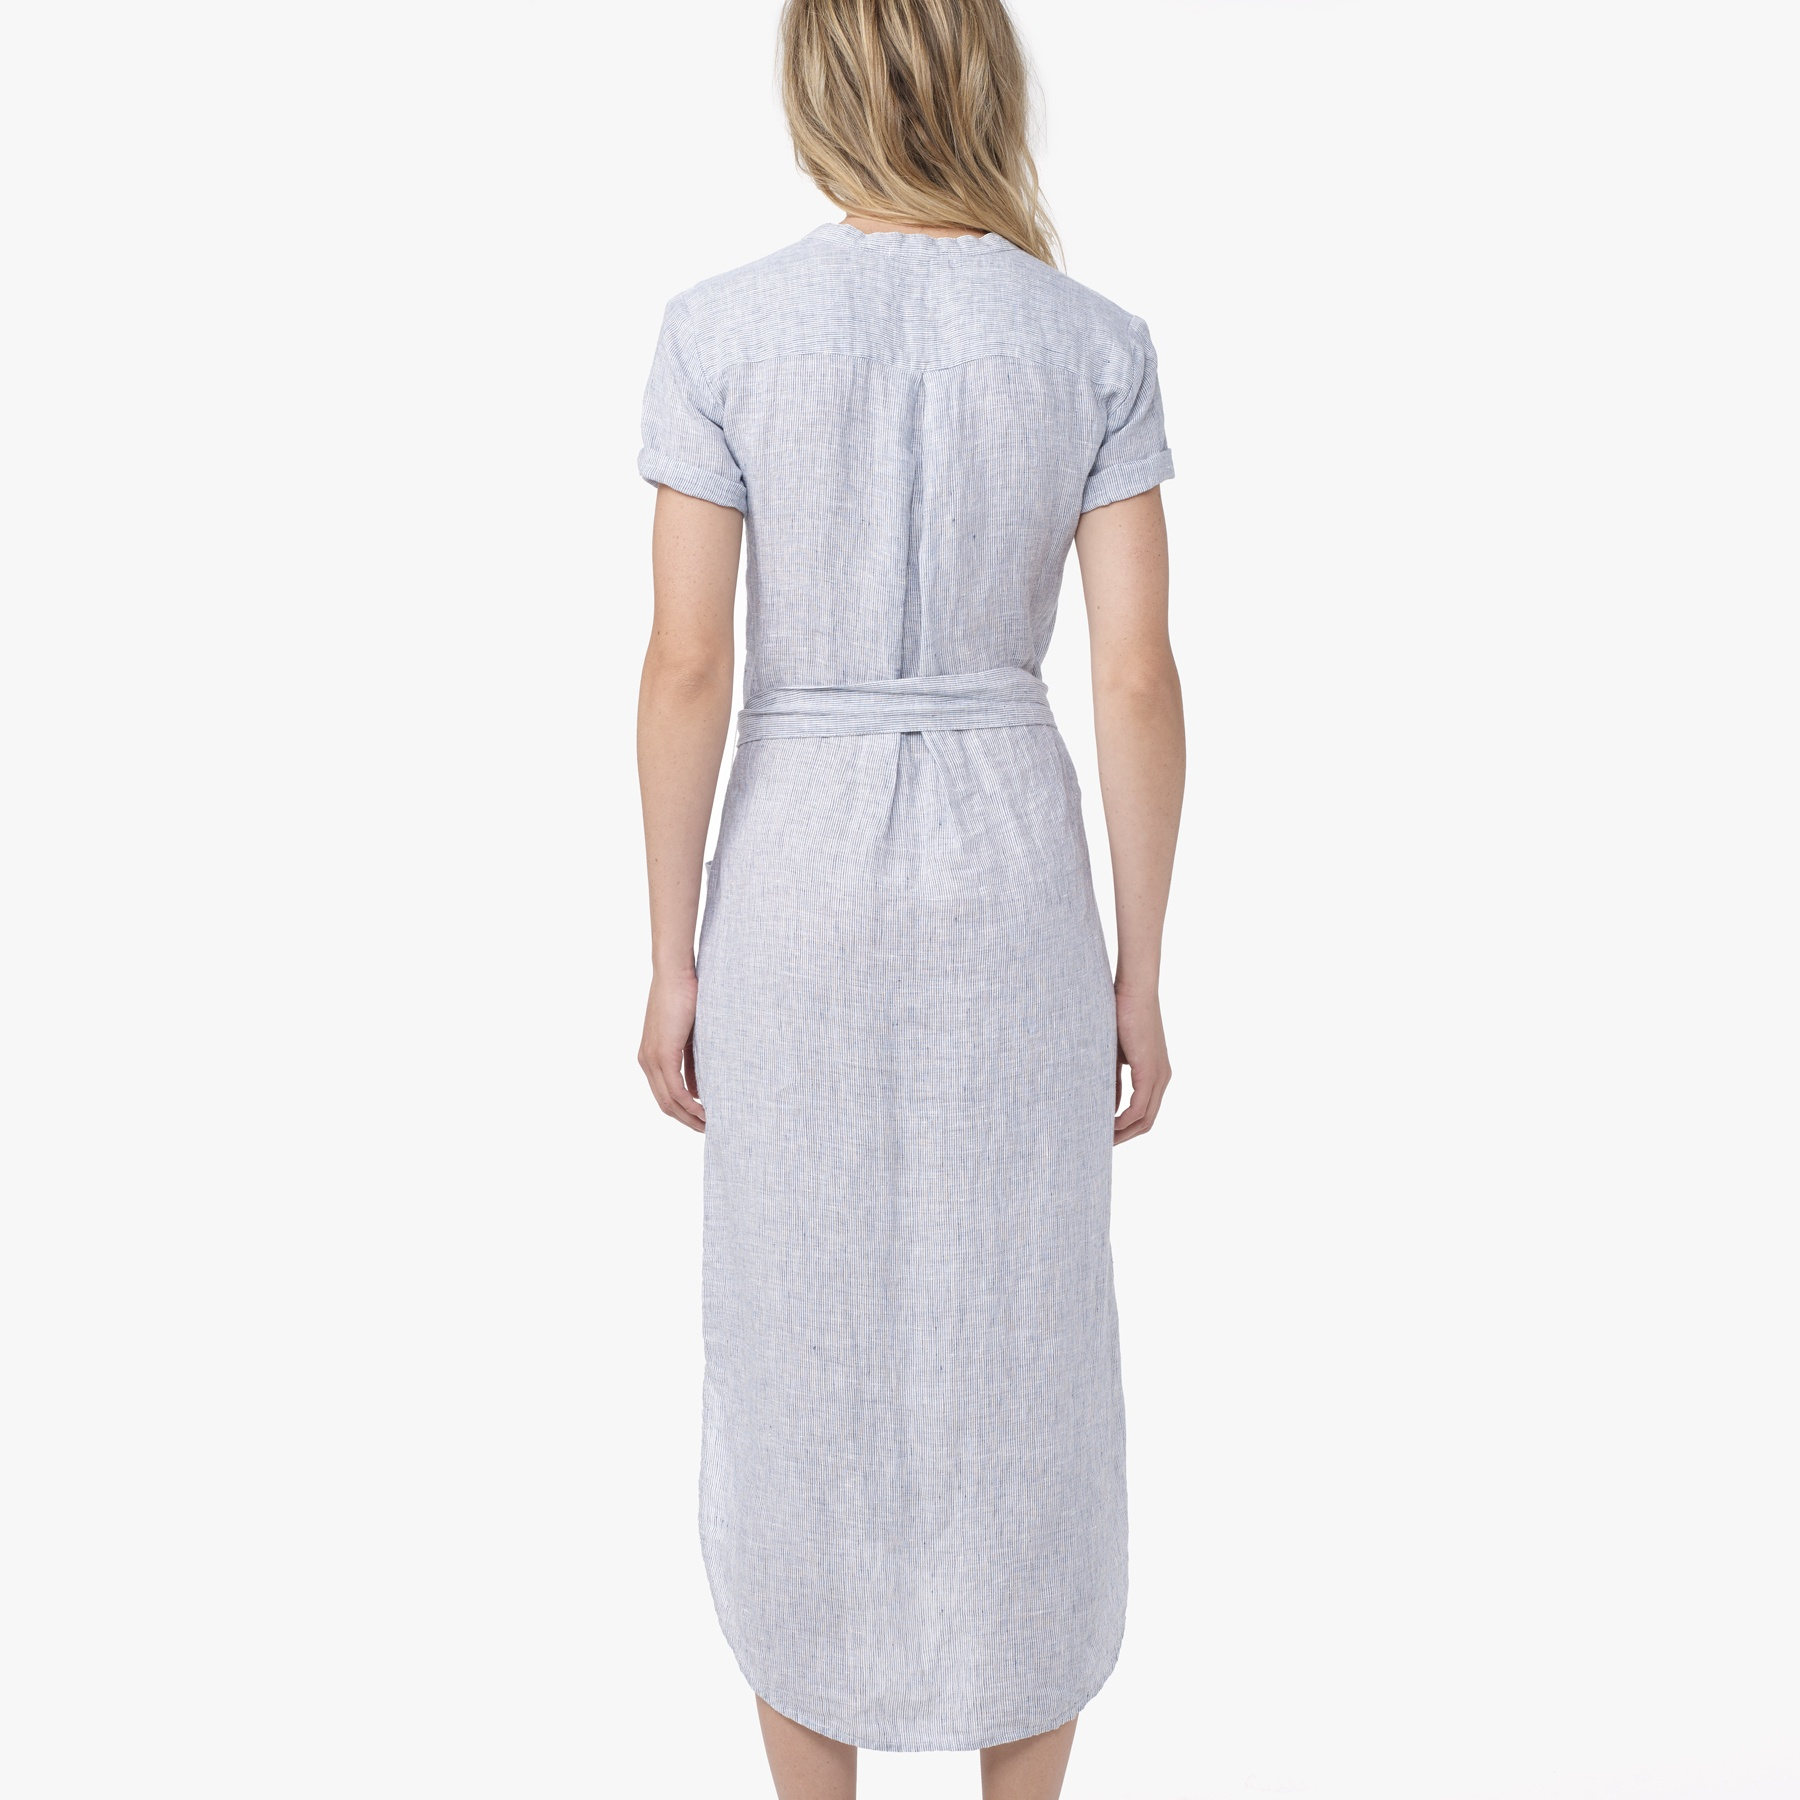 87118e9e1df James Perse Linen Stripe Shirt Dress in Blue - Lyst